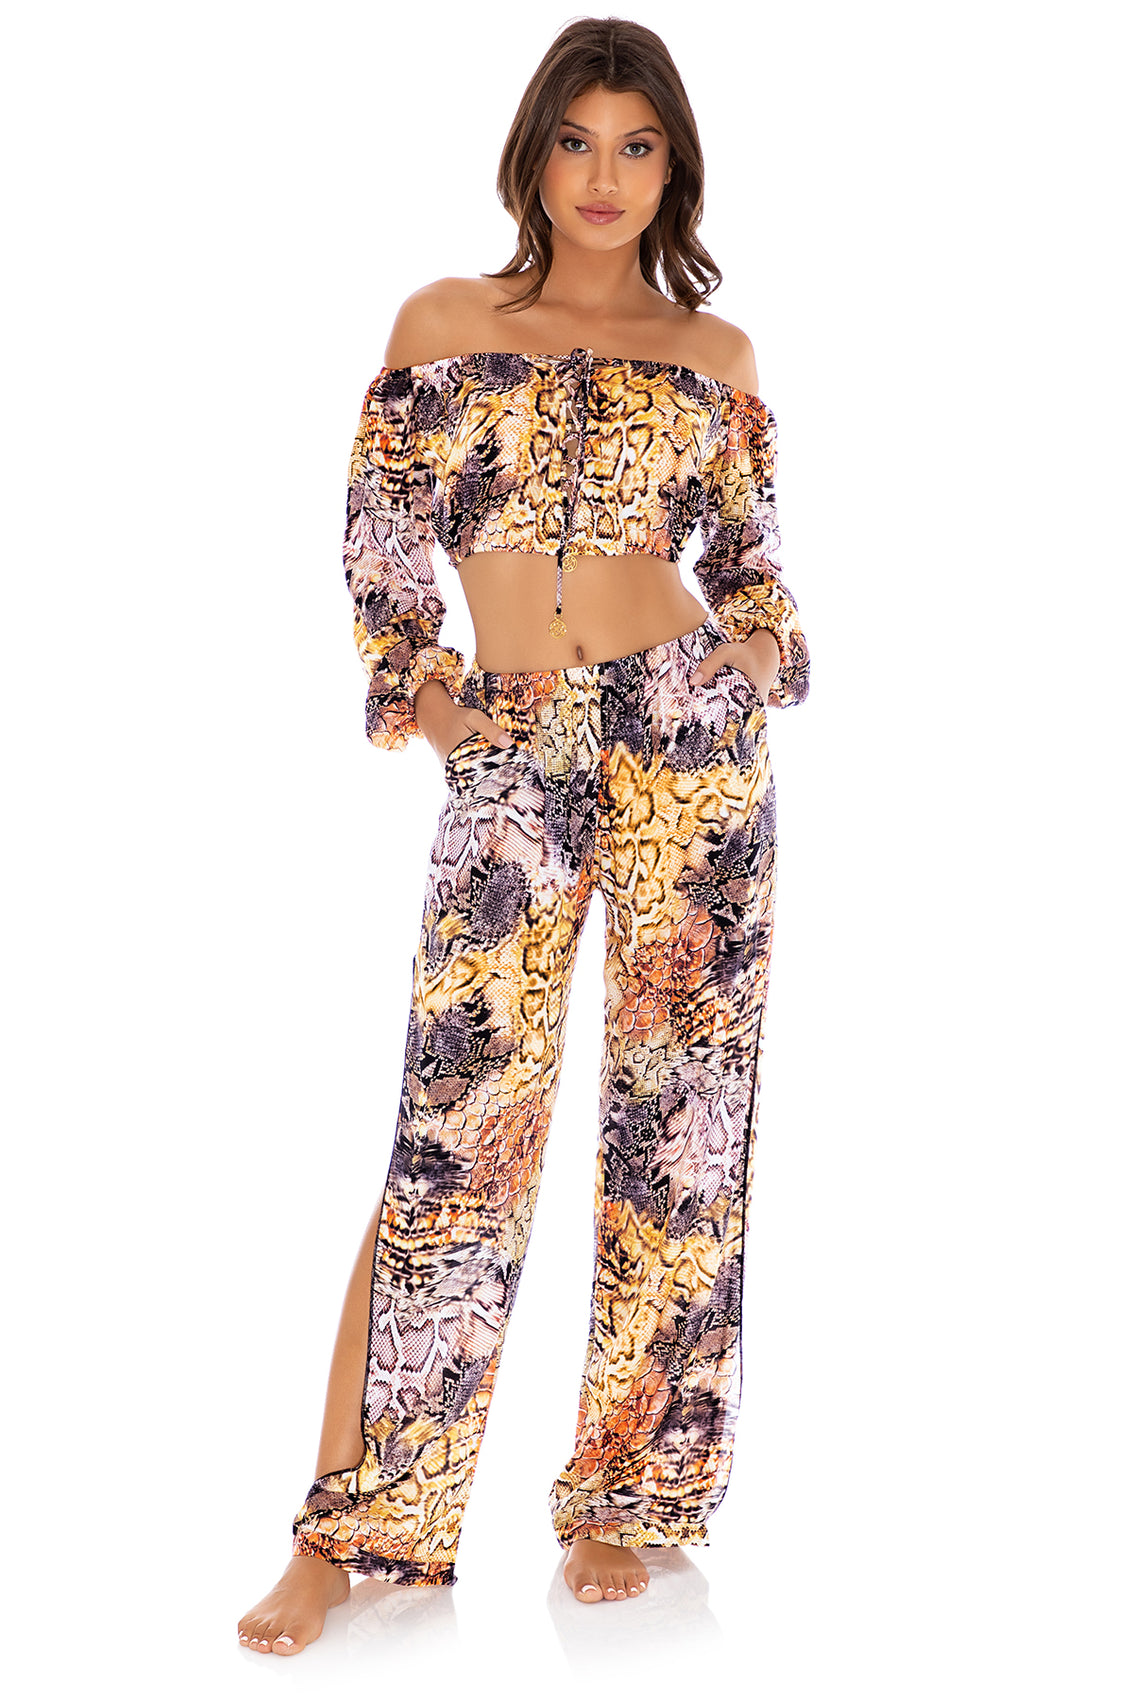 SKINS - Crop Top & Split Side Wide Leg Pant • Natural Snake